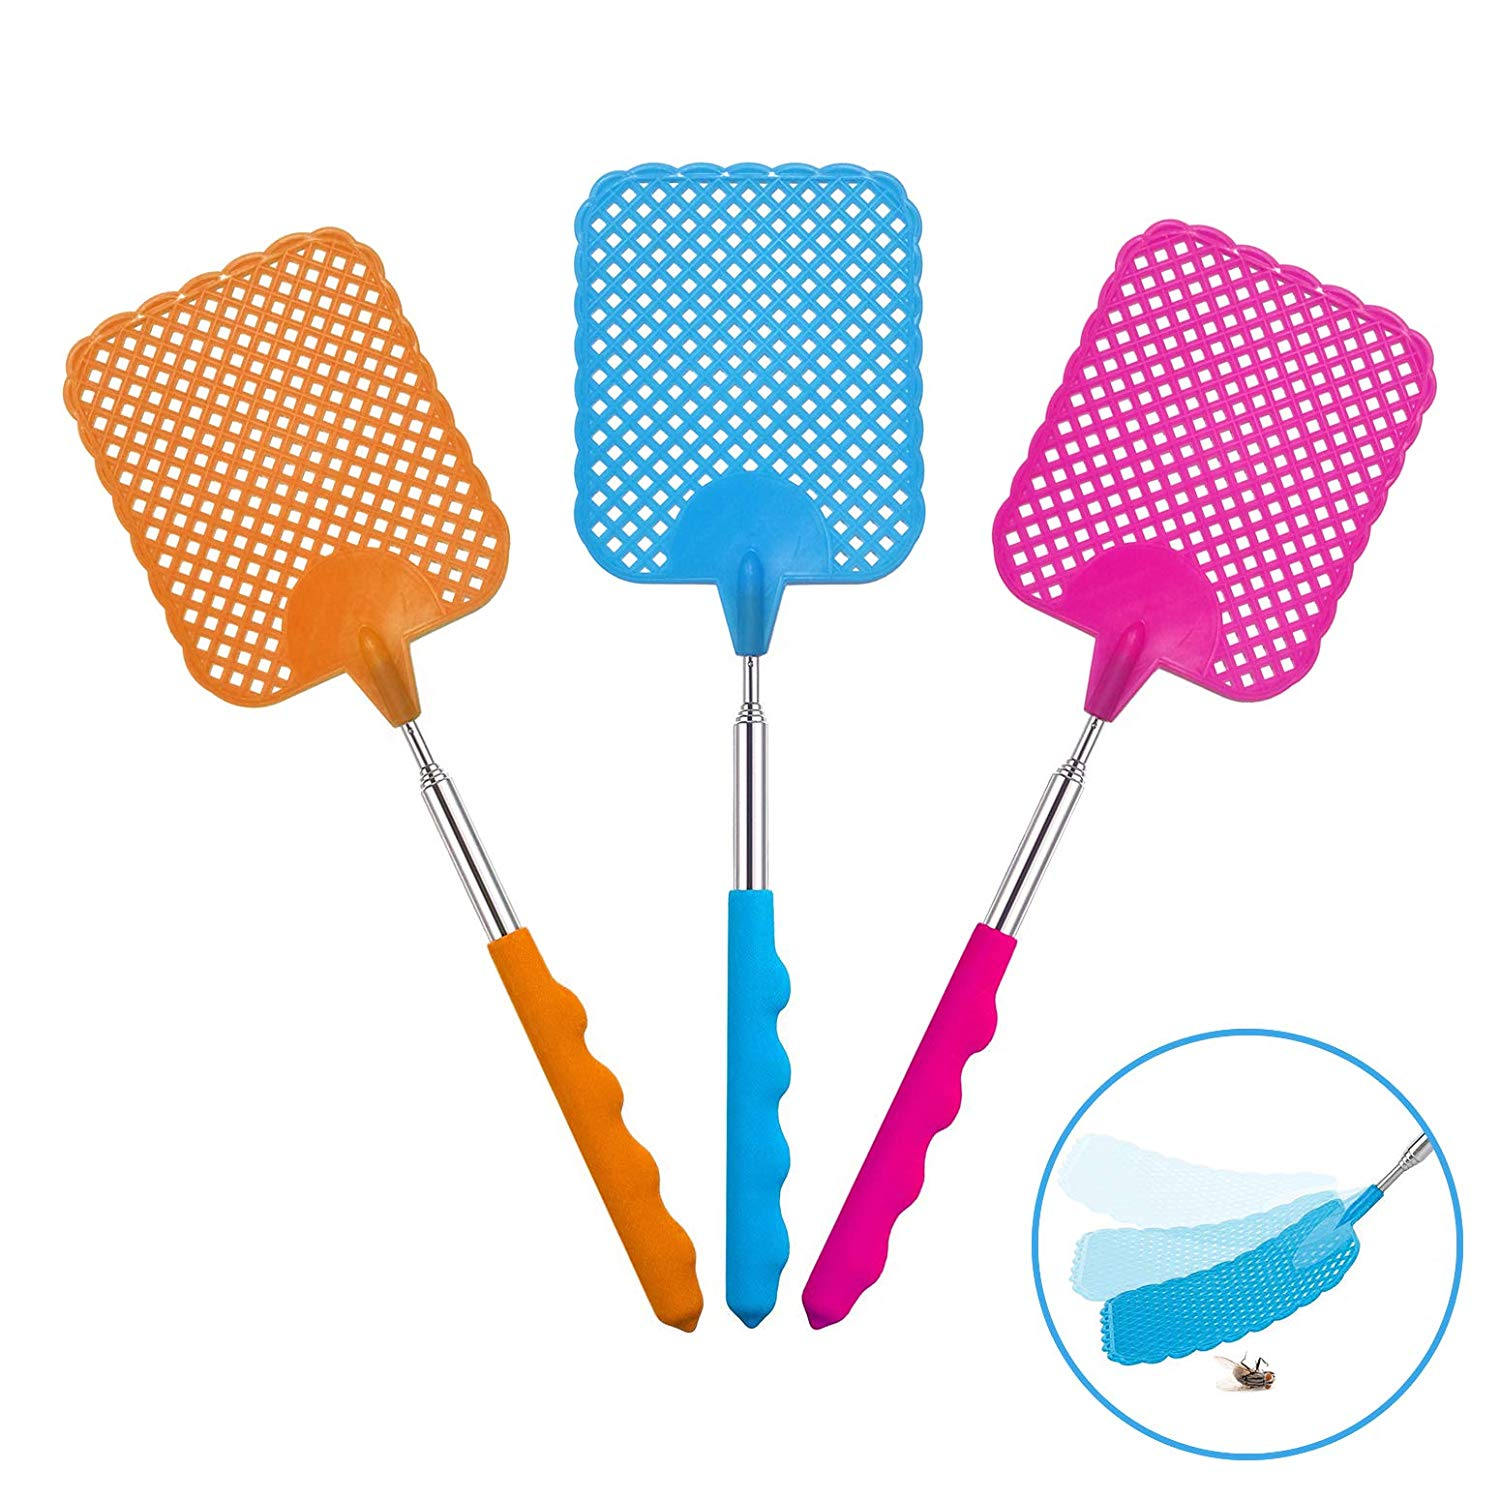 W.ent Fly Swatter Plastic Stainless Steel Extendable Manual Swat Pest Control Set of 3